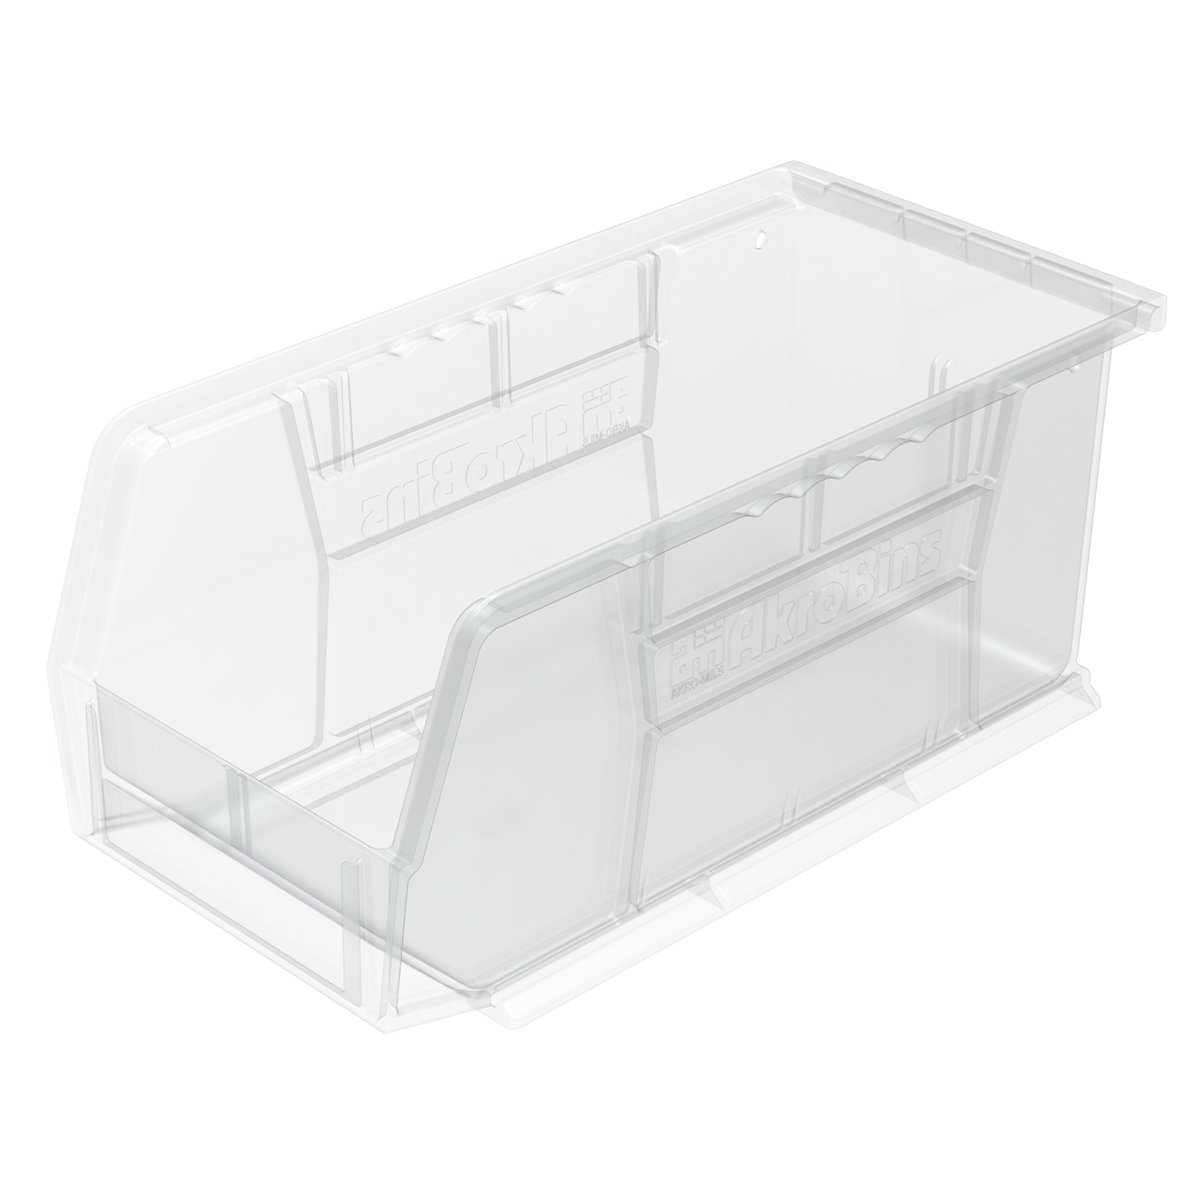 Akro-Mils 30230 Plastic Storage Stacking AkroBin, 11-Inch by 5-Inch by 5-Inch, Clear, Case of 12